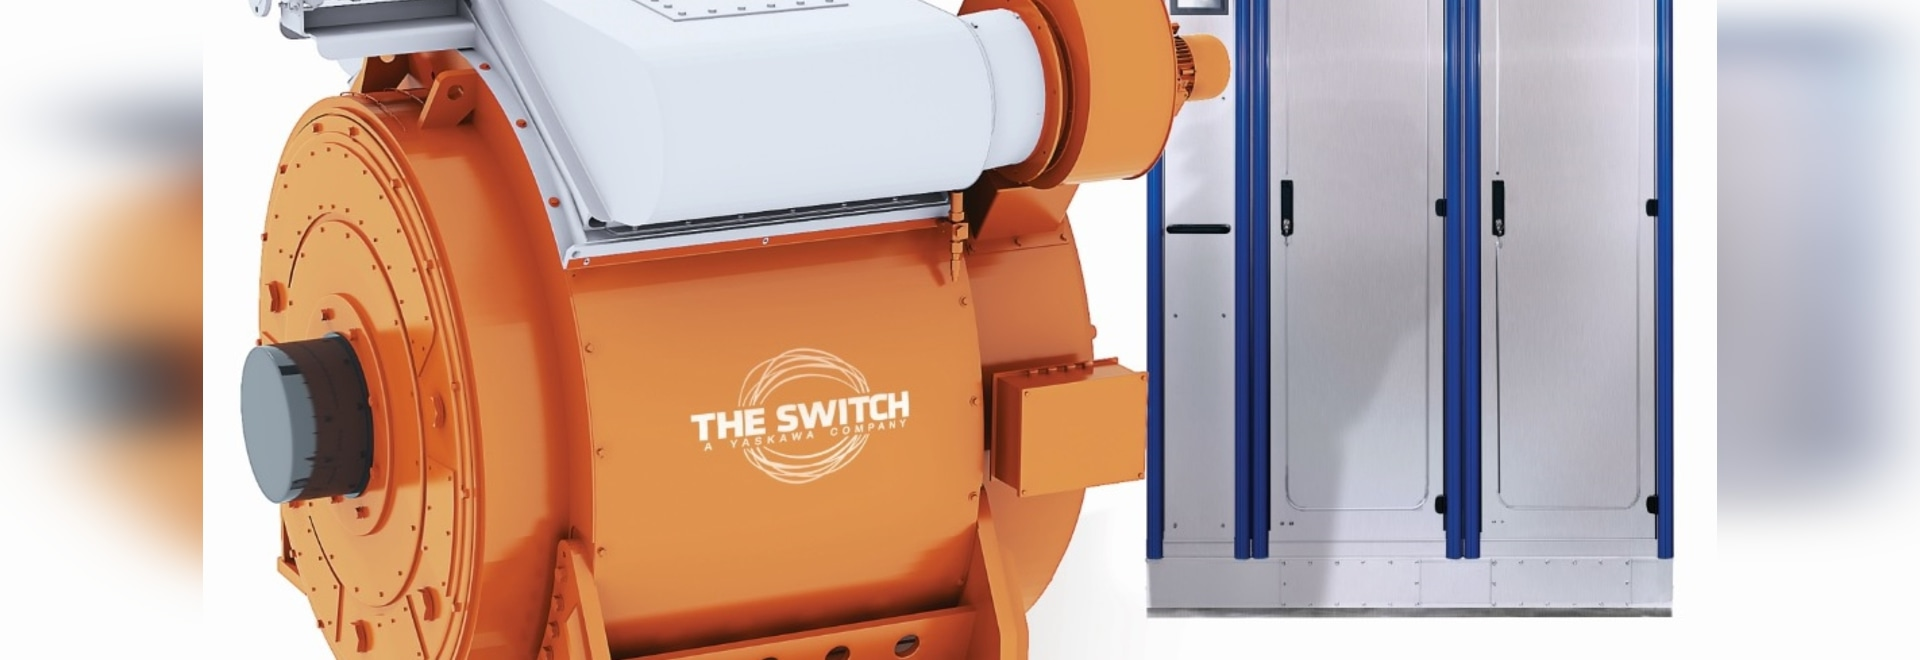 The Switch is well-known for its low voltage drives for the marine industry